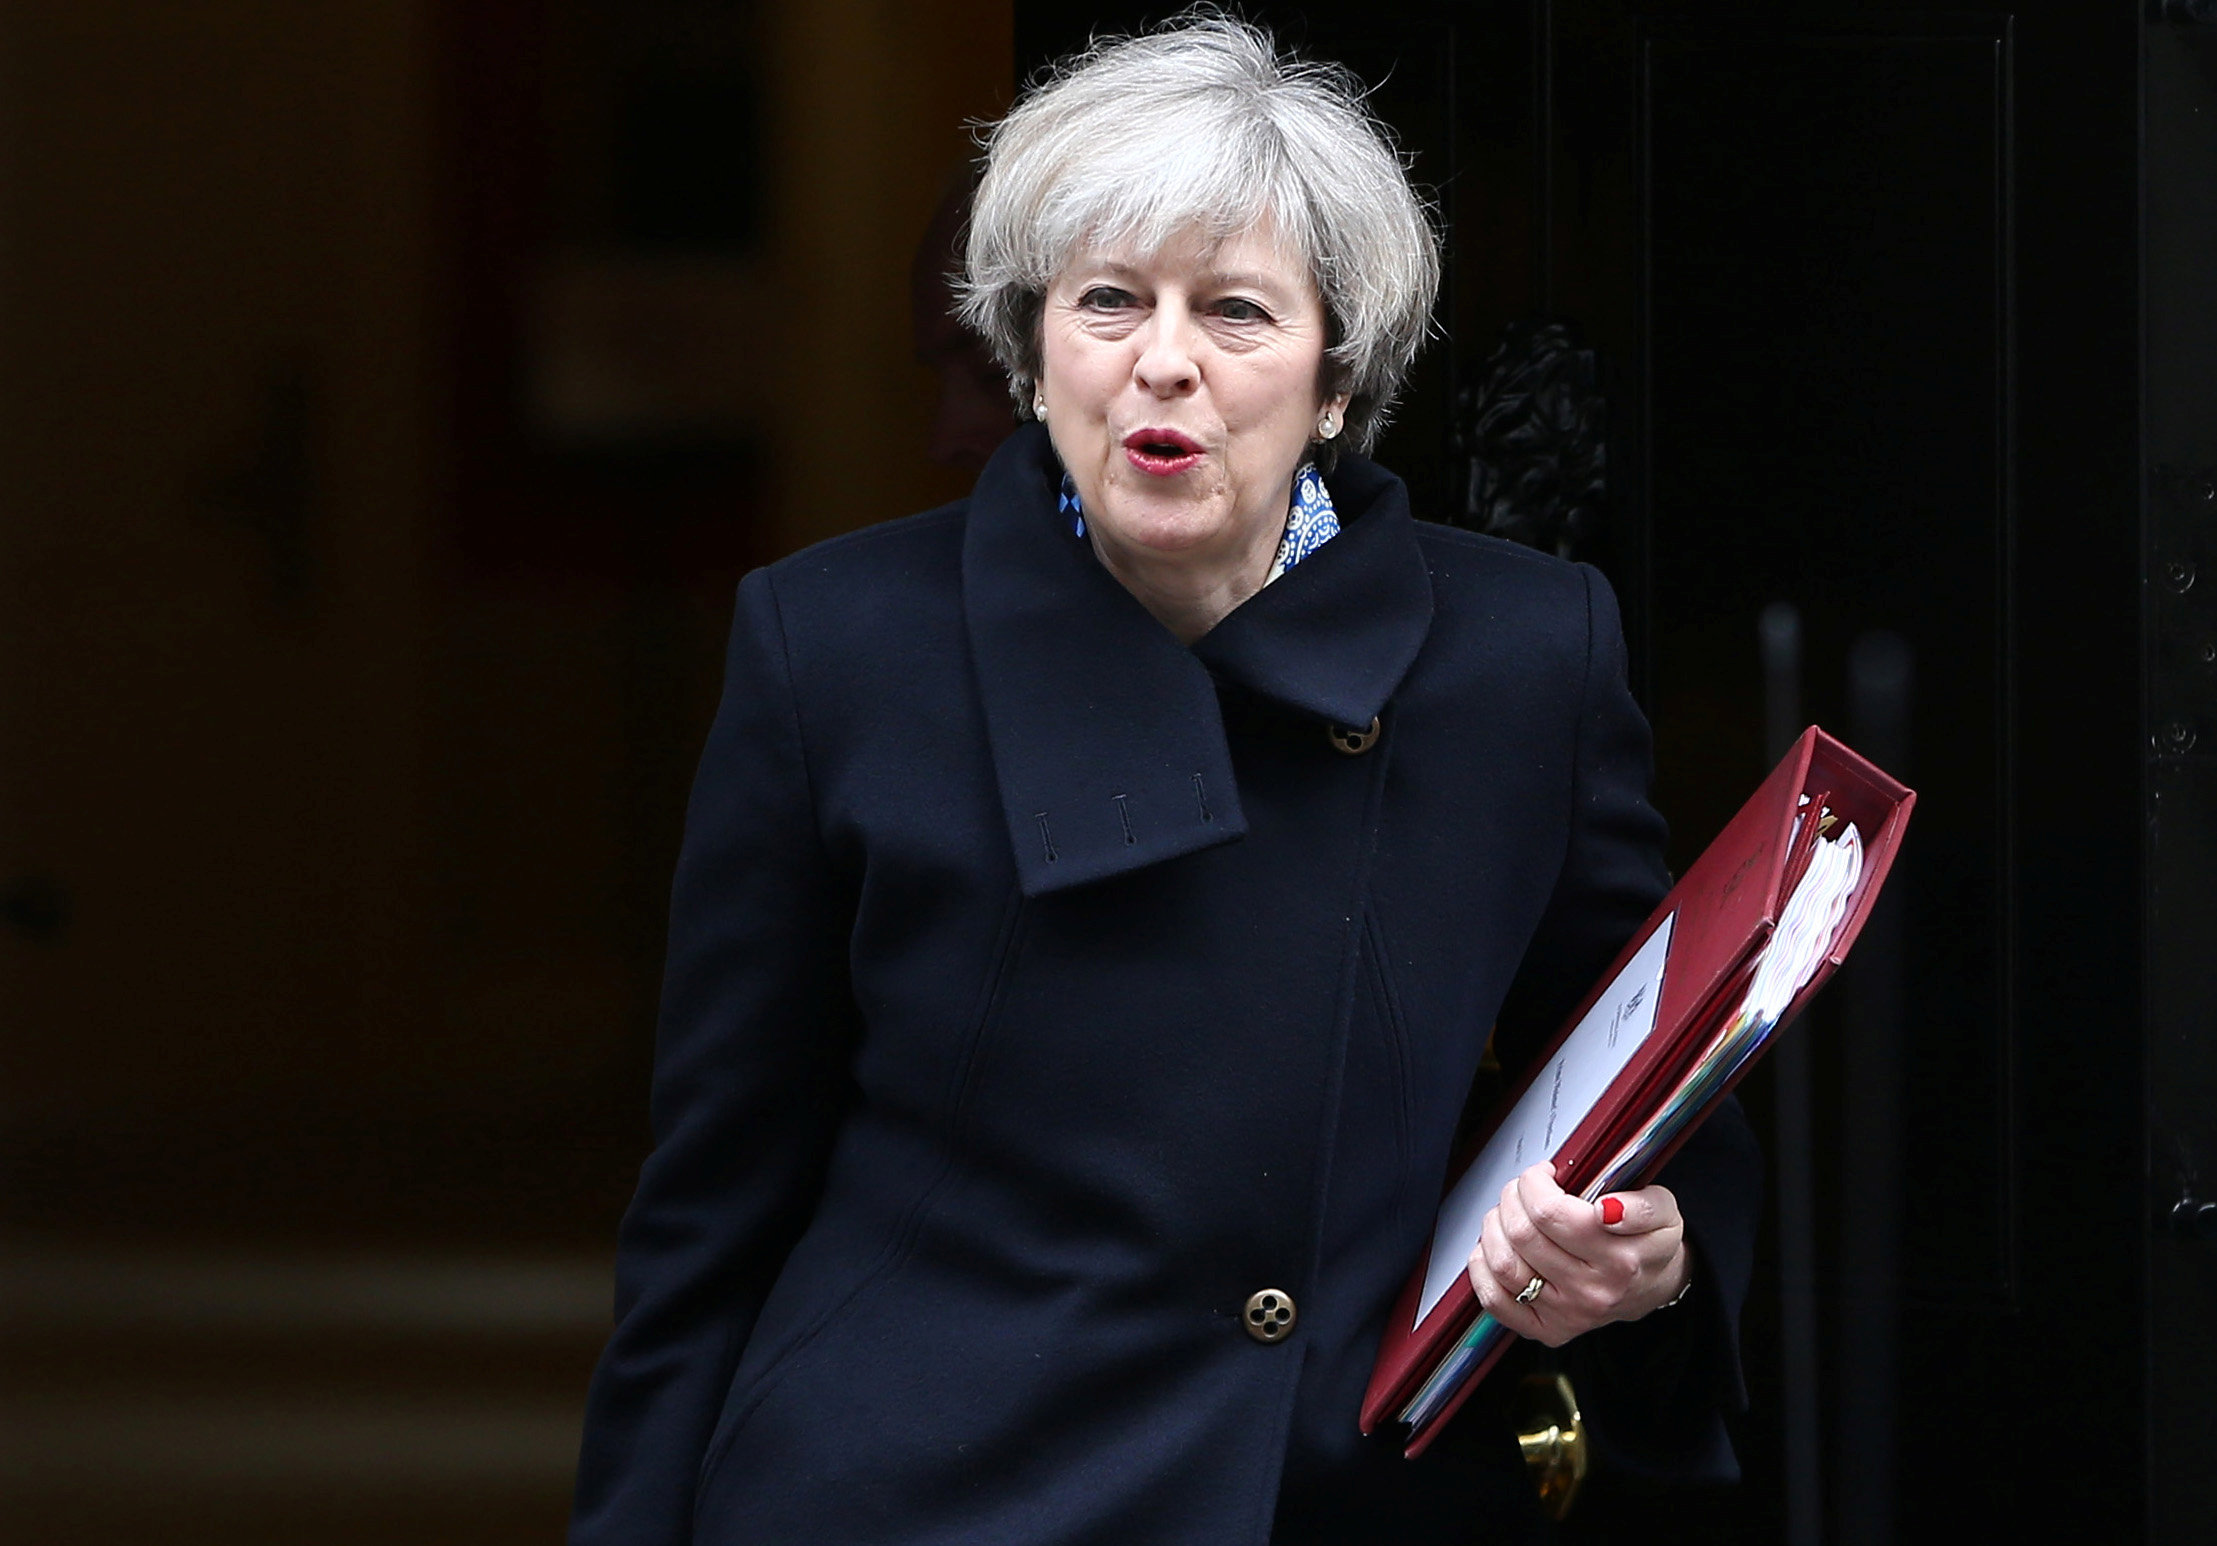 Theresa May Wins Rights to Launch Brexit Proceedings, But Question of When Remains